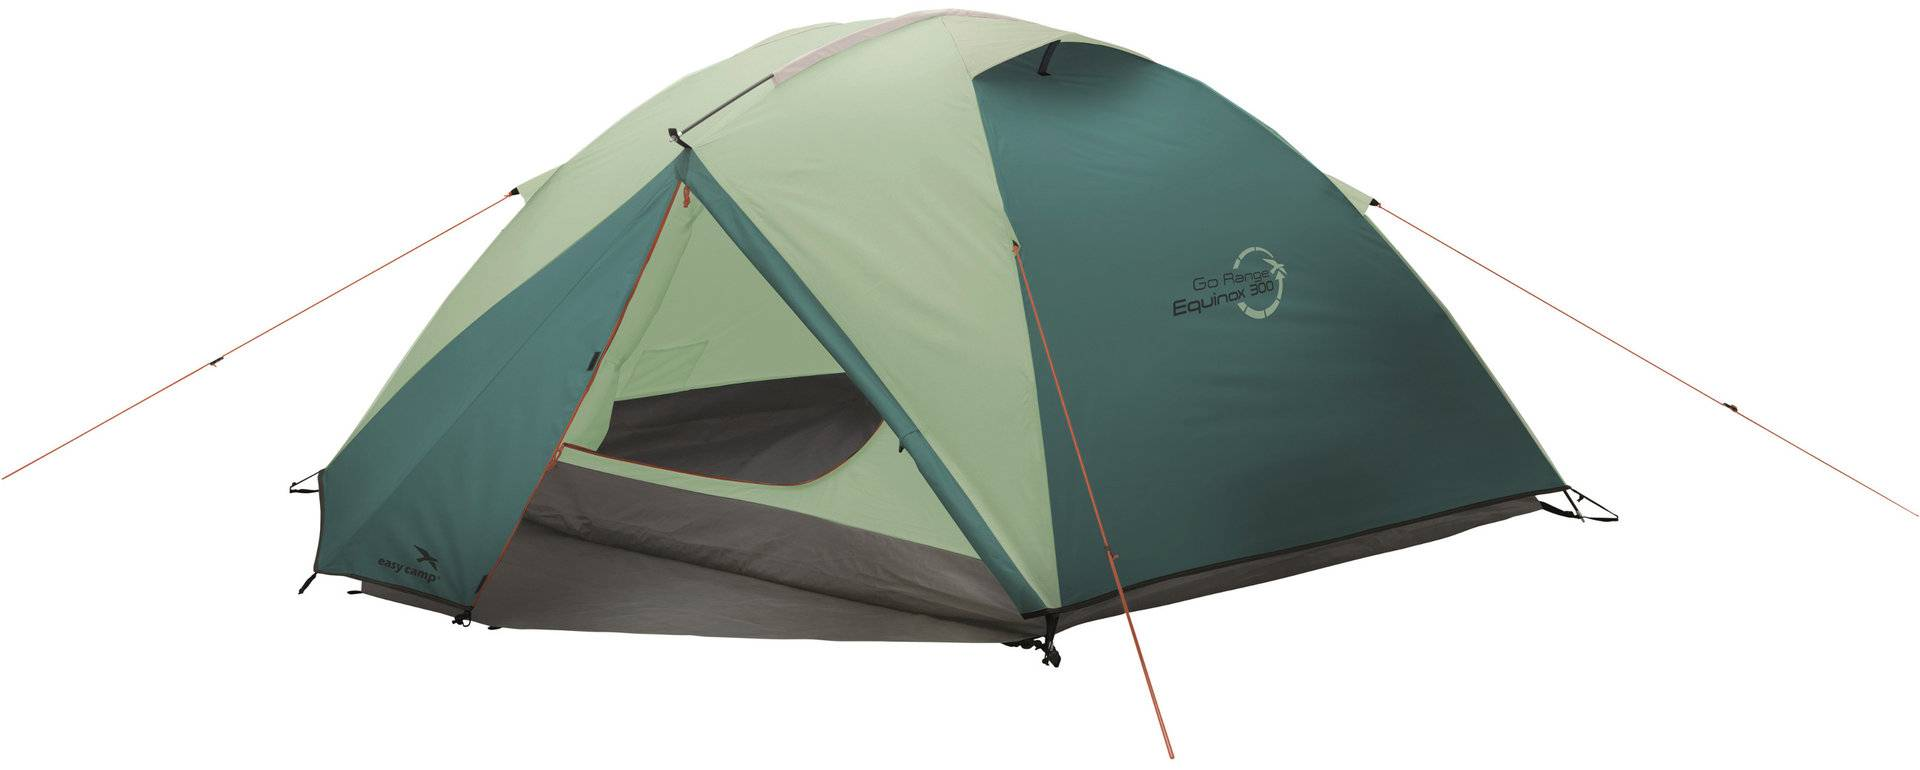 Easy Camp Equinox 300 tenda Verde unica taglia